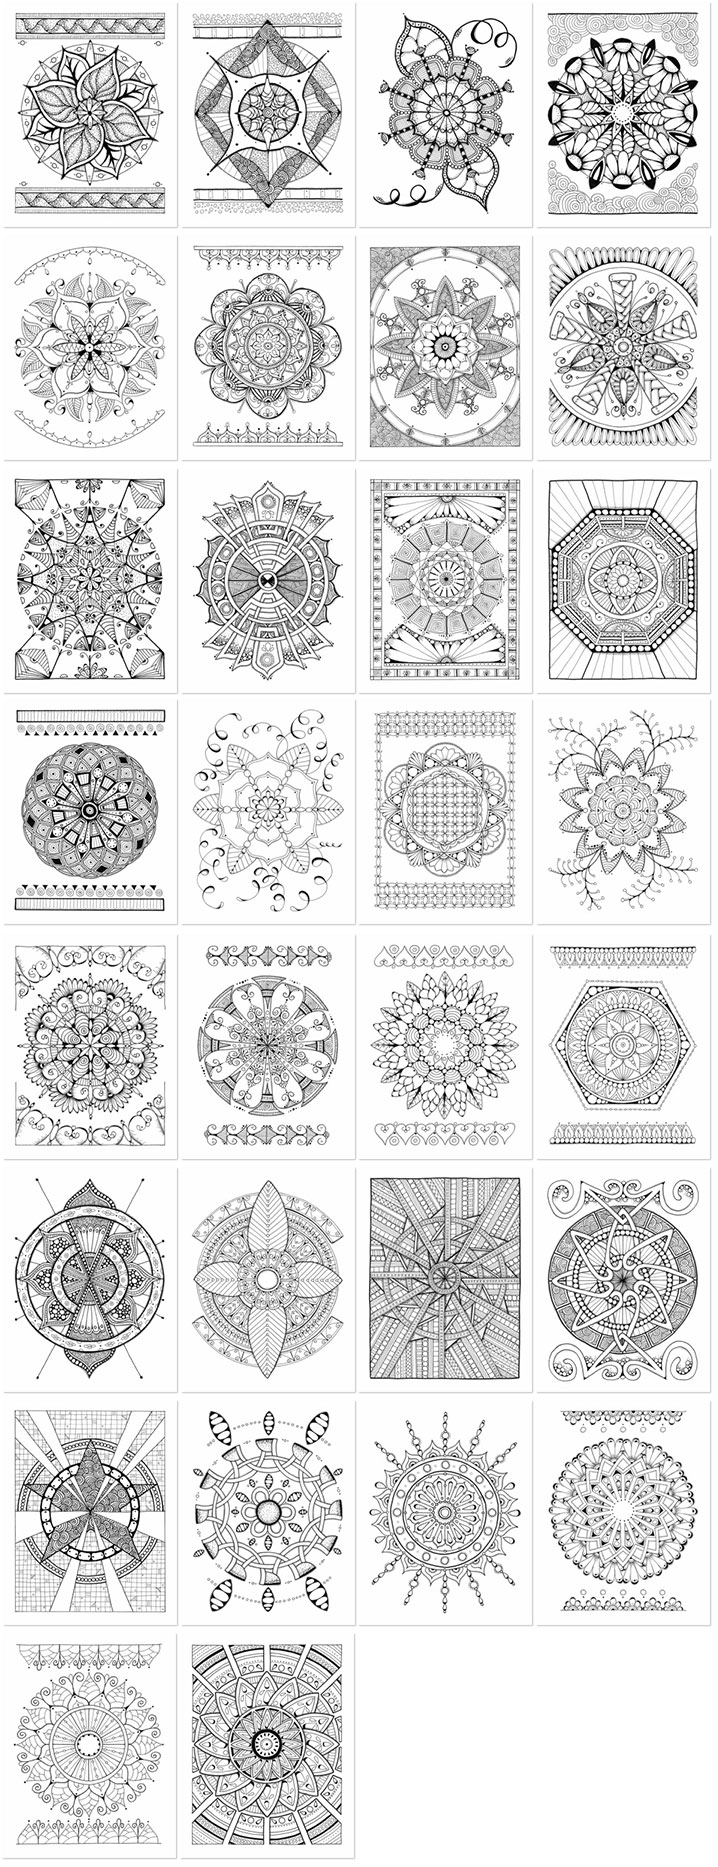 Mandala bliss coloring book for Coloring pages bliss